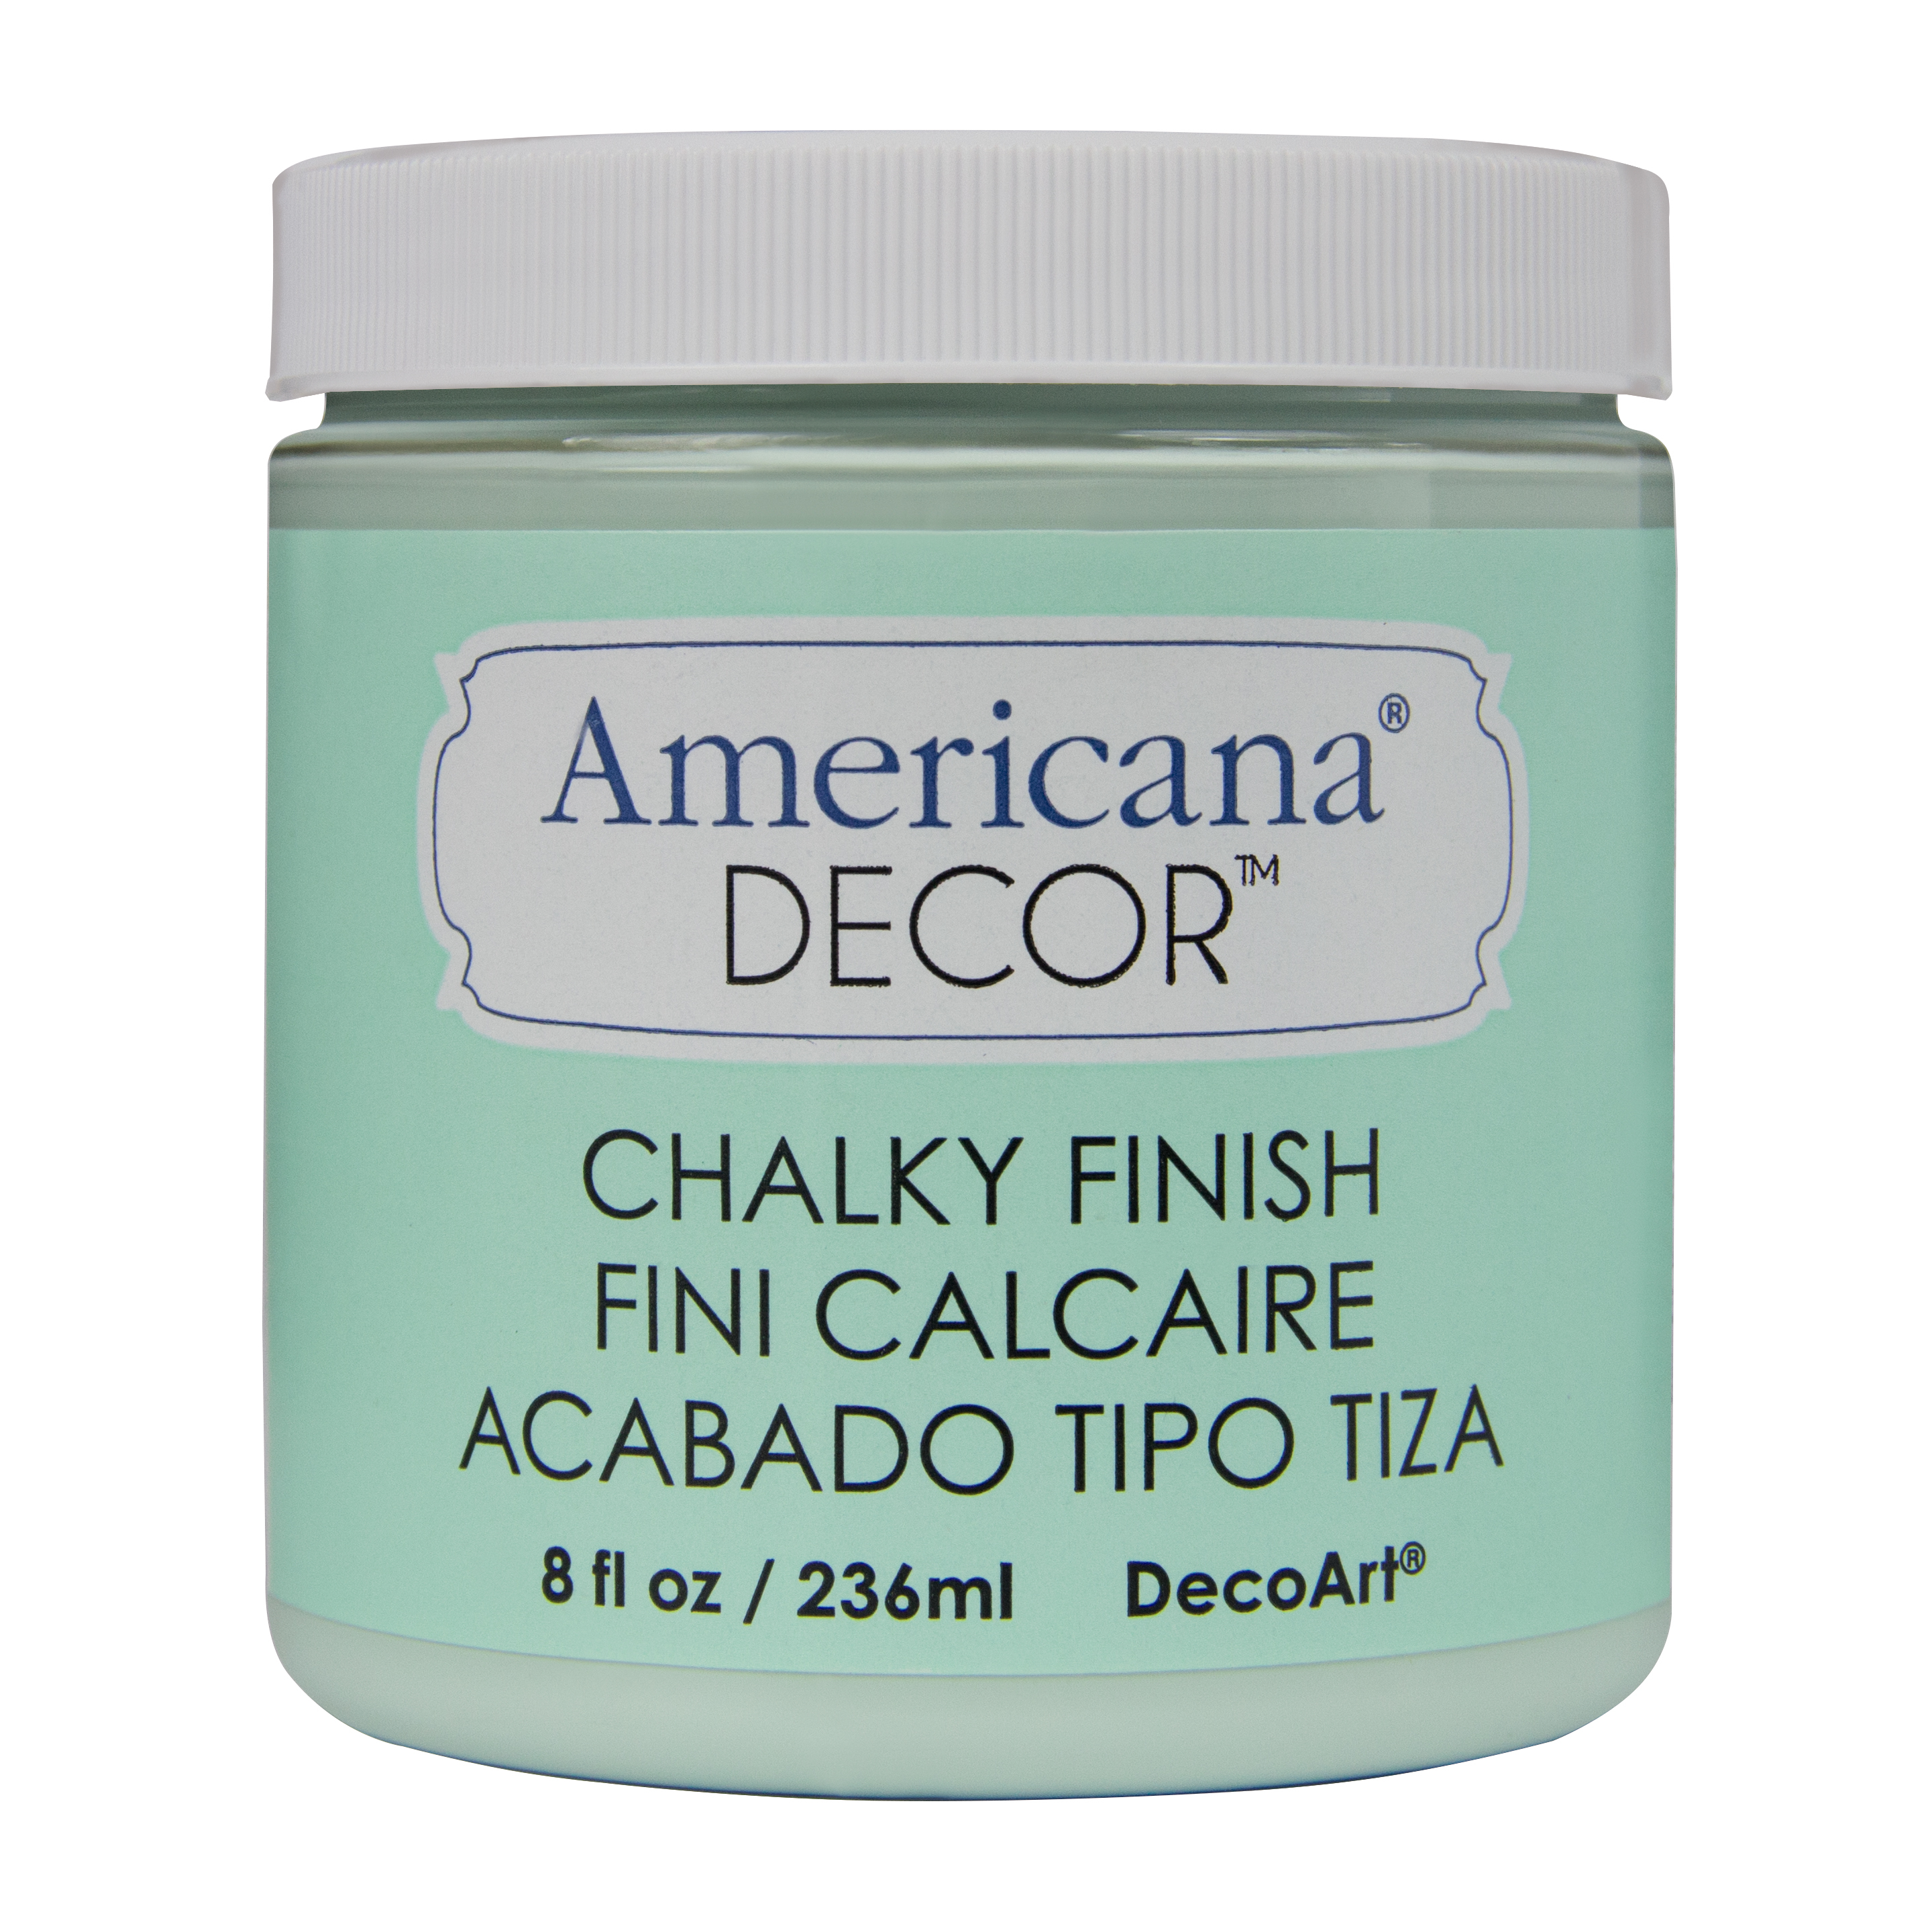 REFRESHING CHALKY FINISH 236ml AMERICANA DECOR